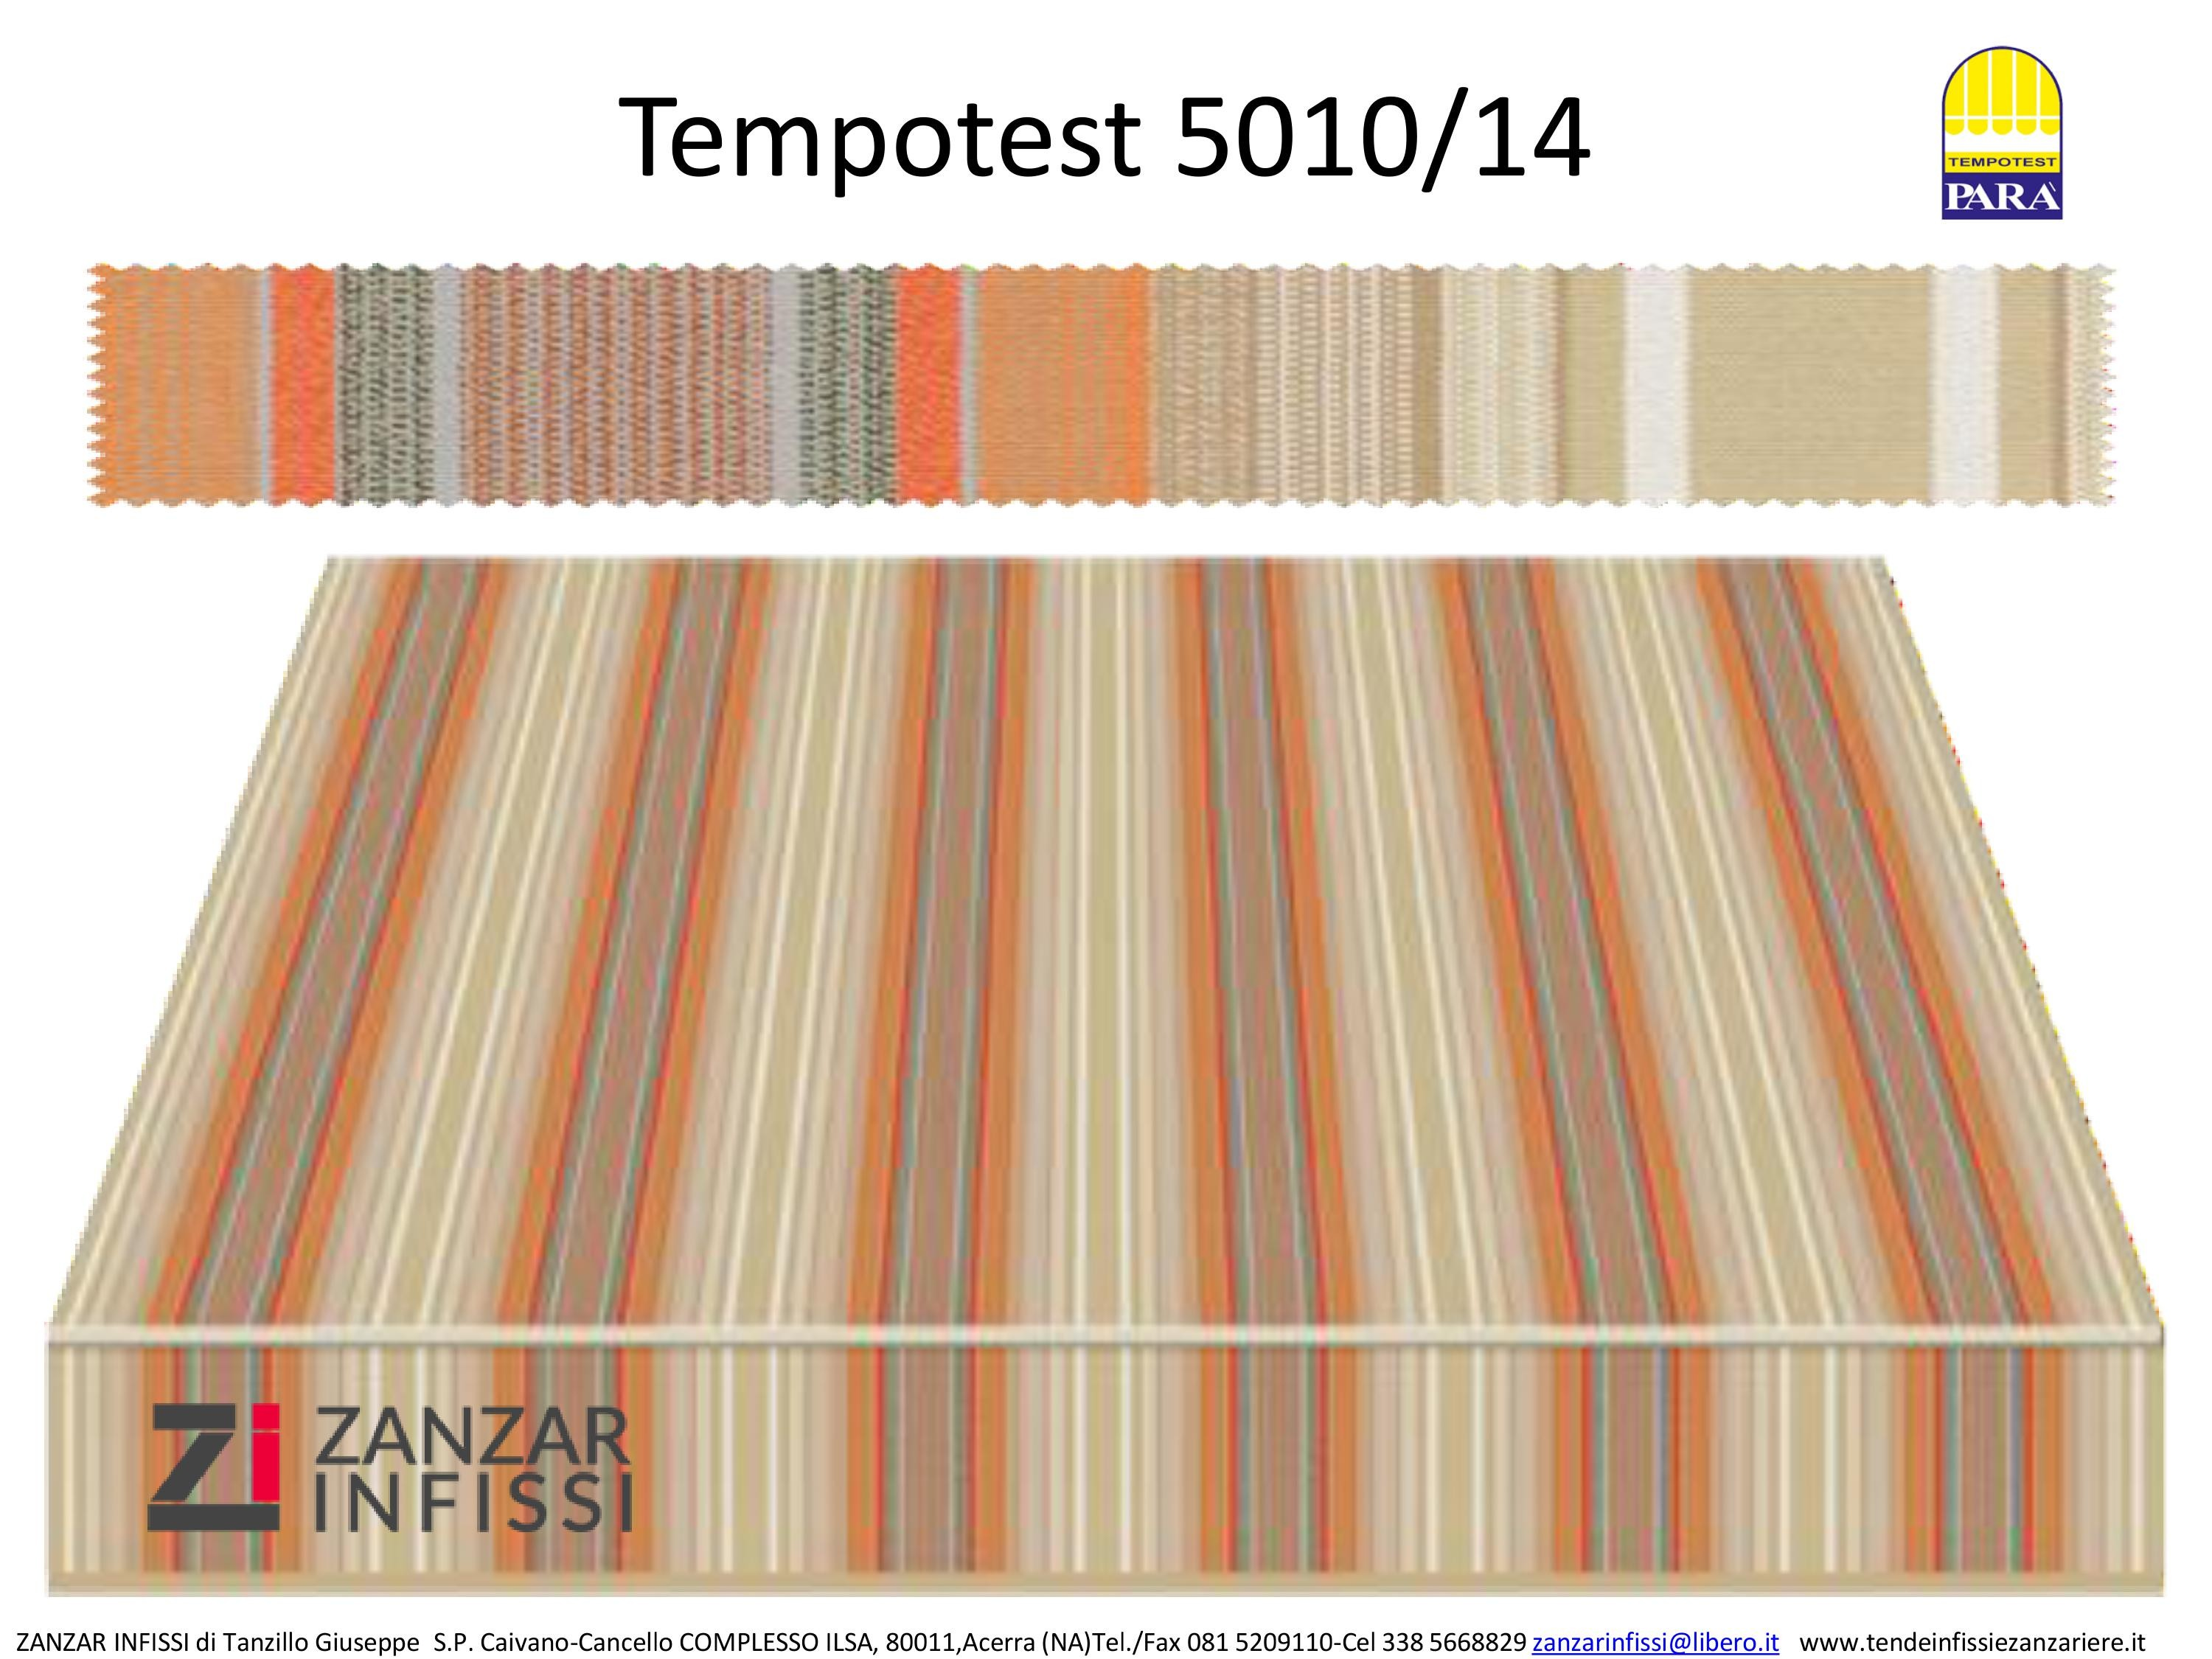 Tempotest 5010/14